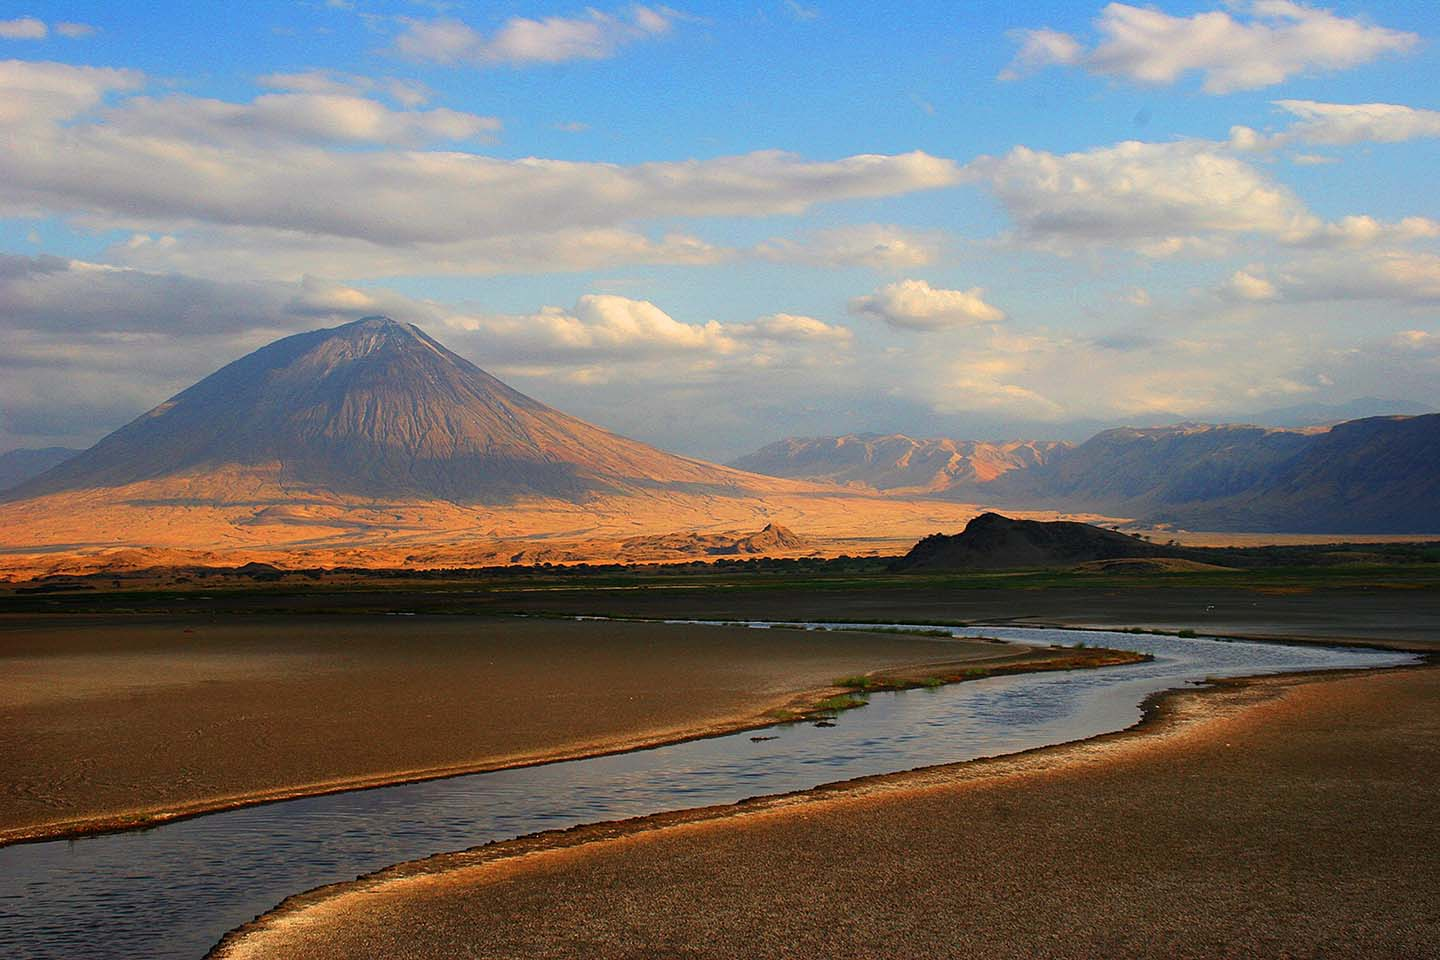 Am Lake Natron